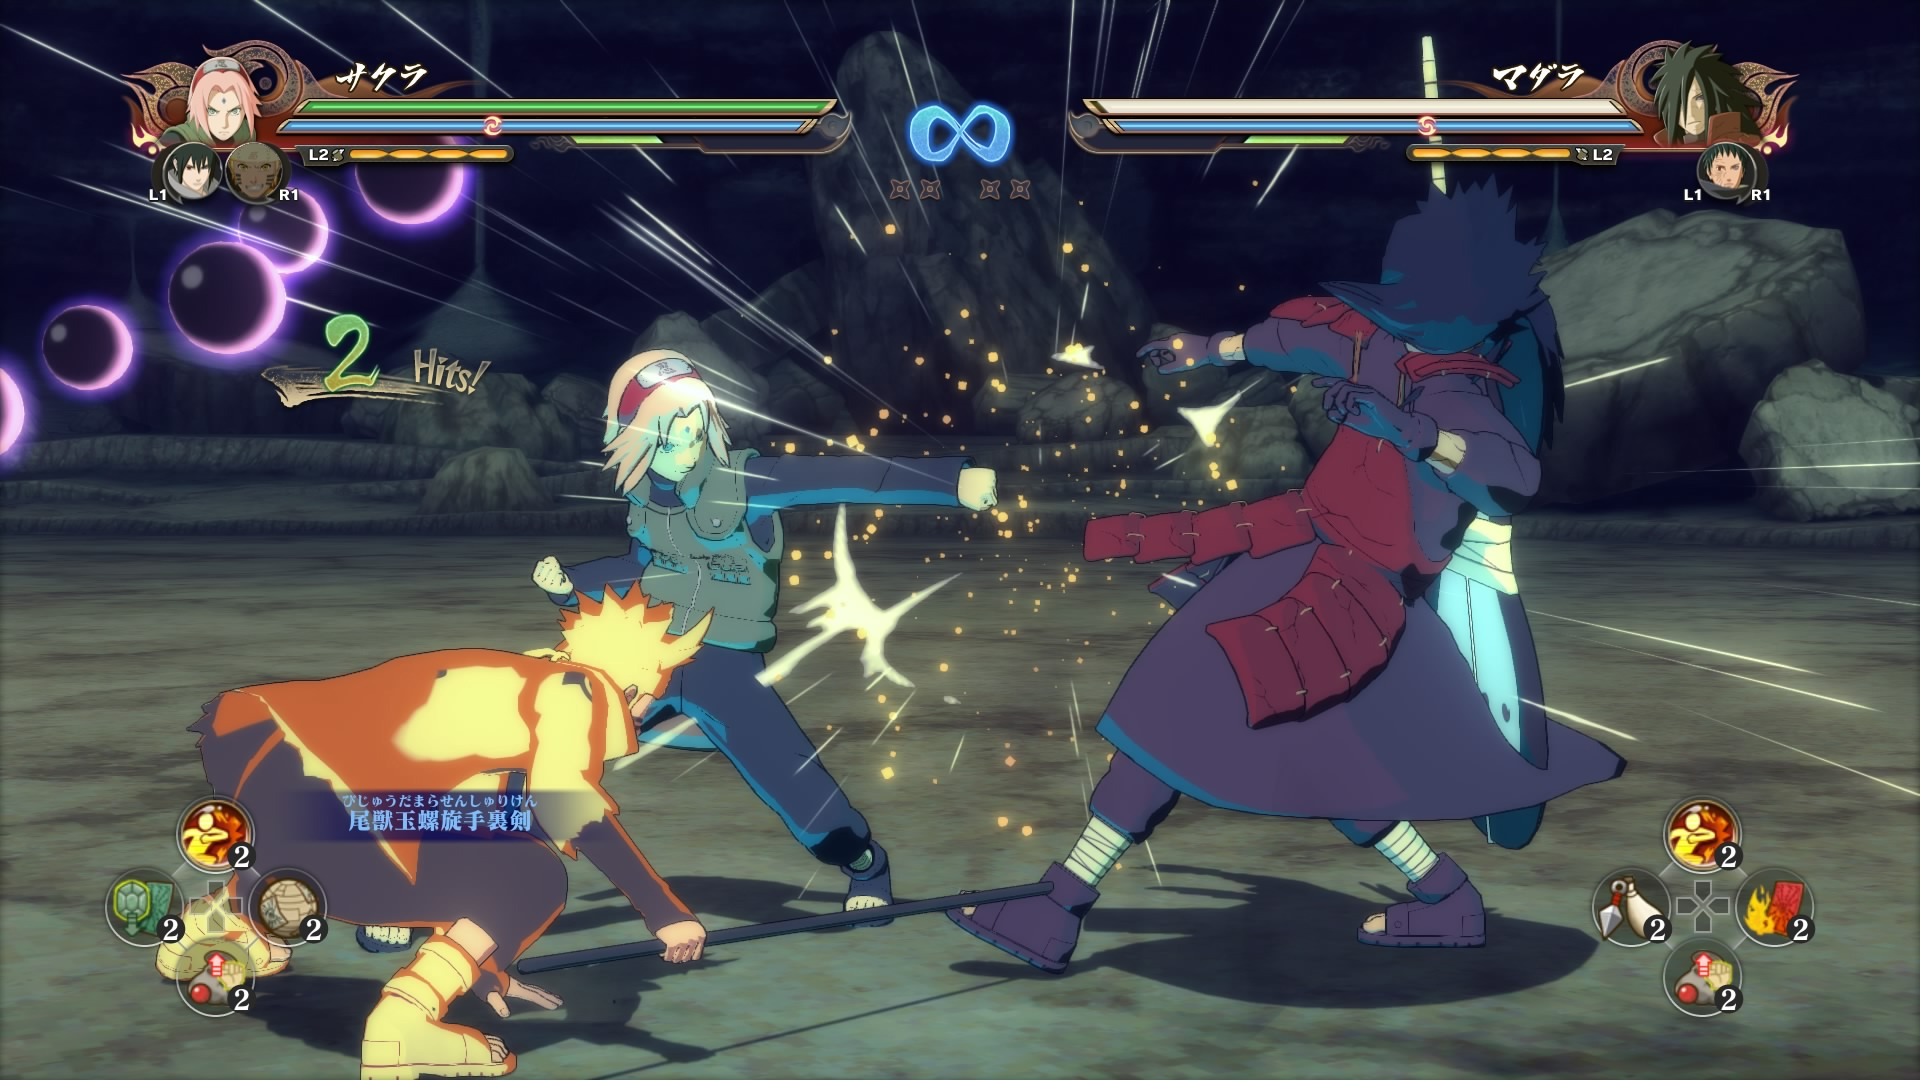 naruto online how to change character in combat